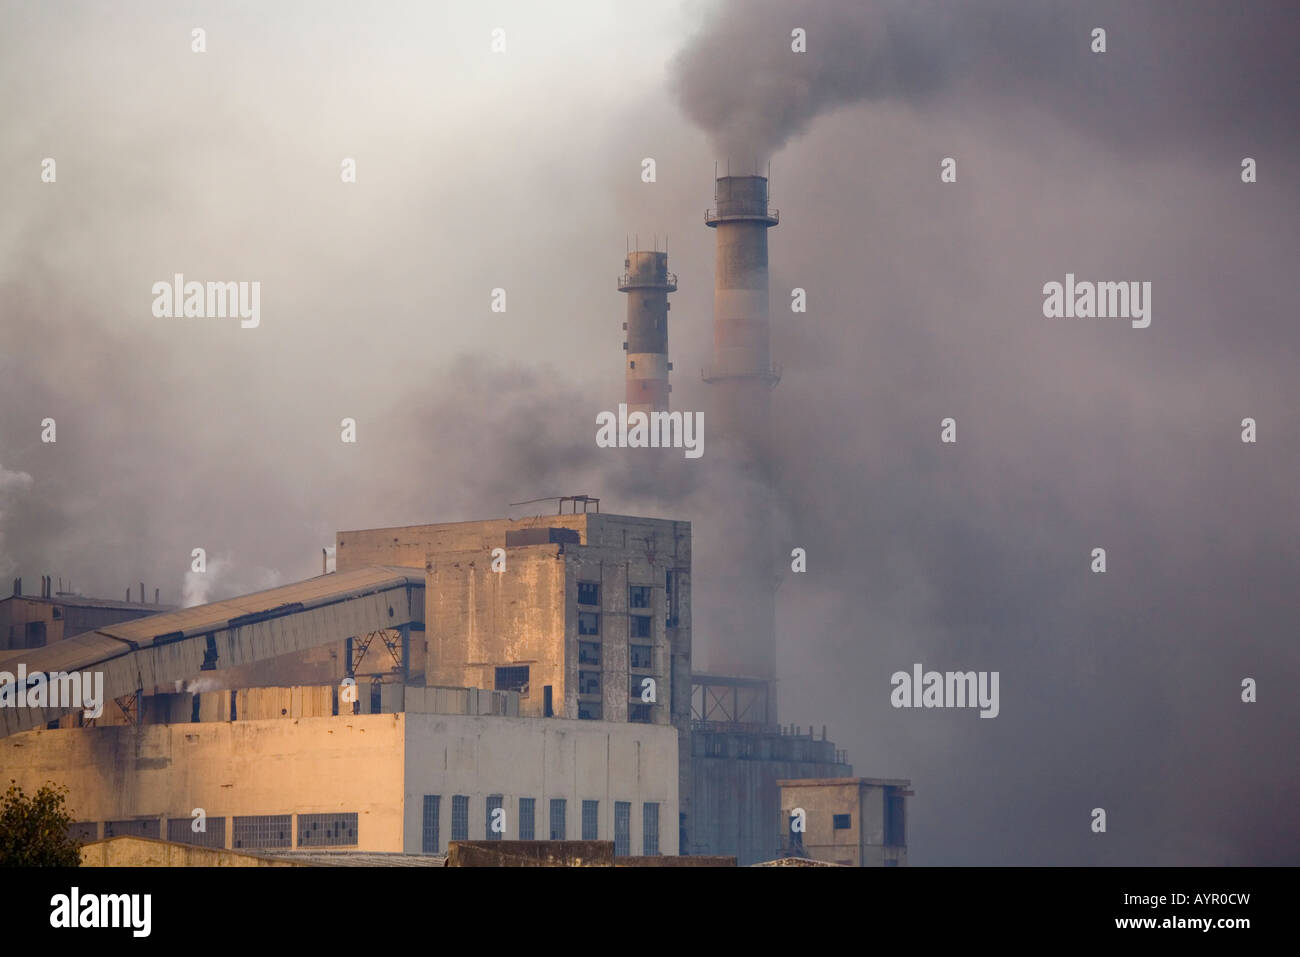 environmental pollution by cement factory Lawsuit against titan cement factory in alexandria for using coal, egyptian   found alexandria portland cement -titan guilty of causing environmental  pollution.